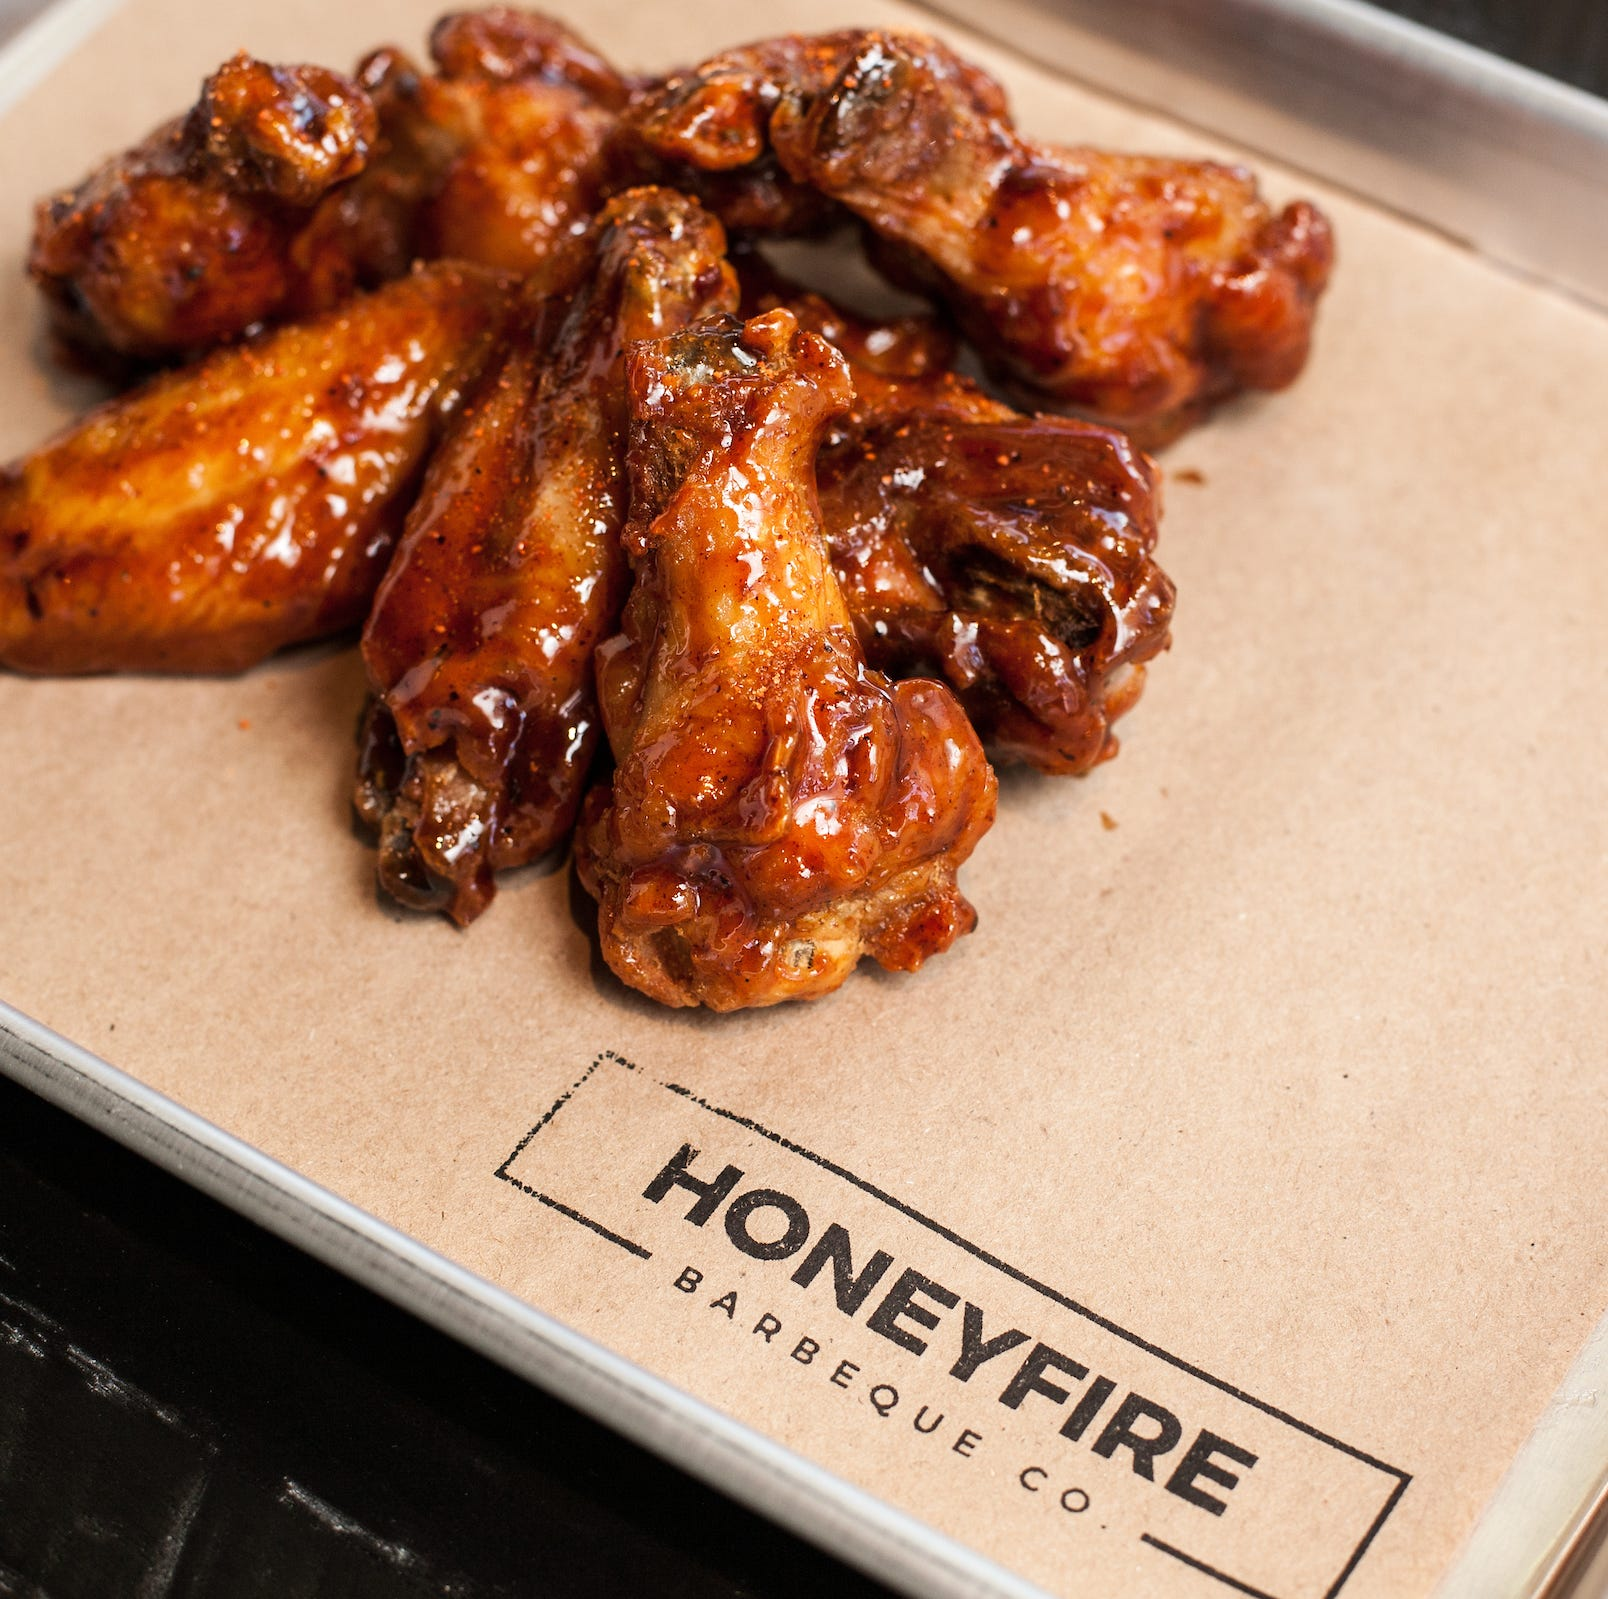 HoneyFire Barbeque an independent that brings big flavor to Bellevue